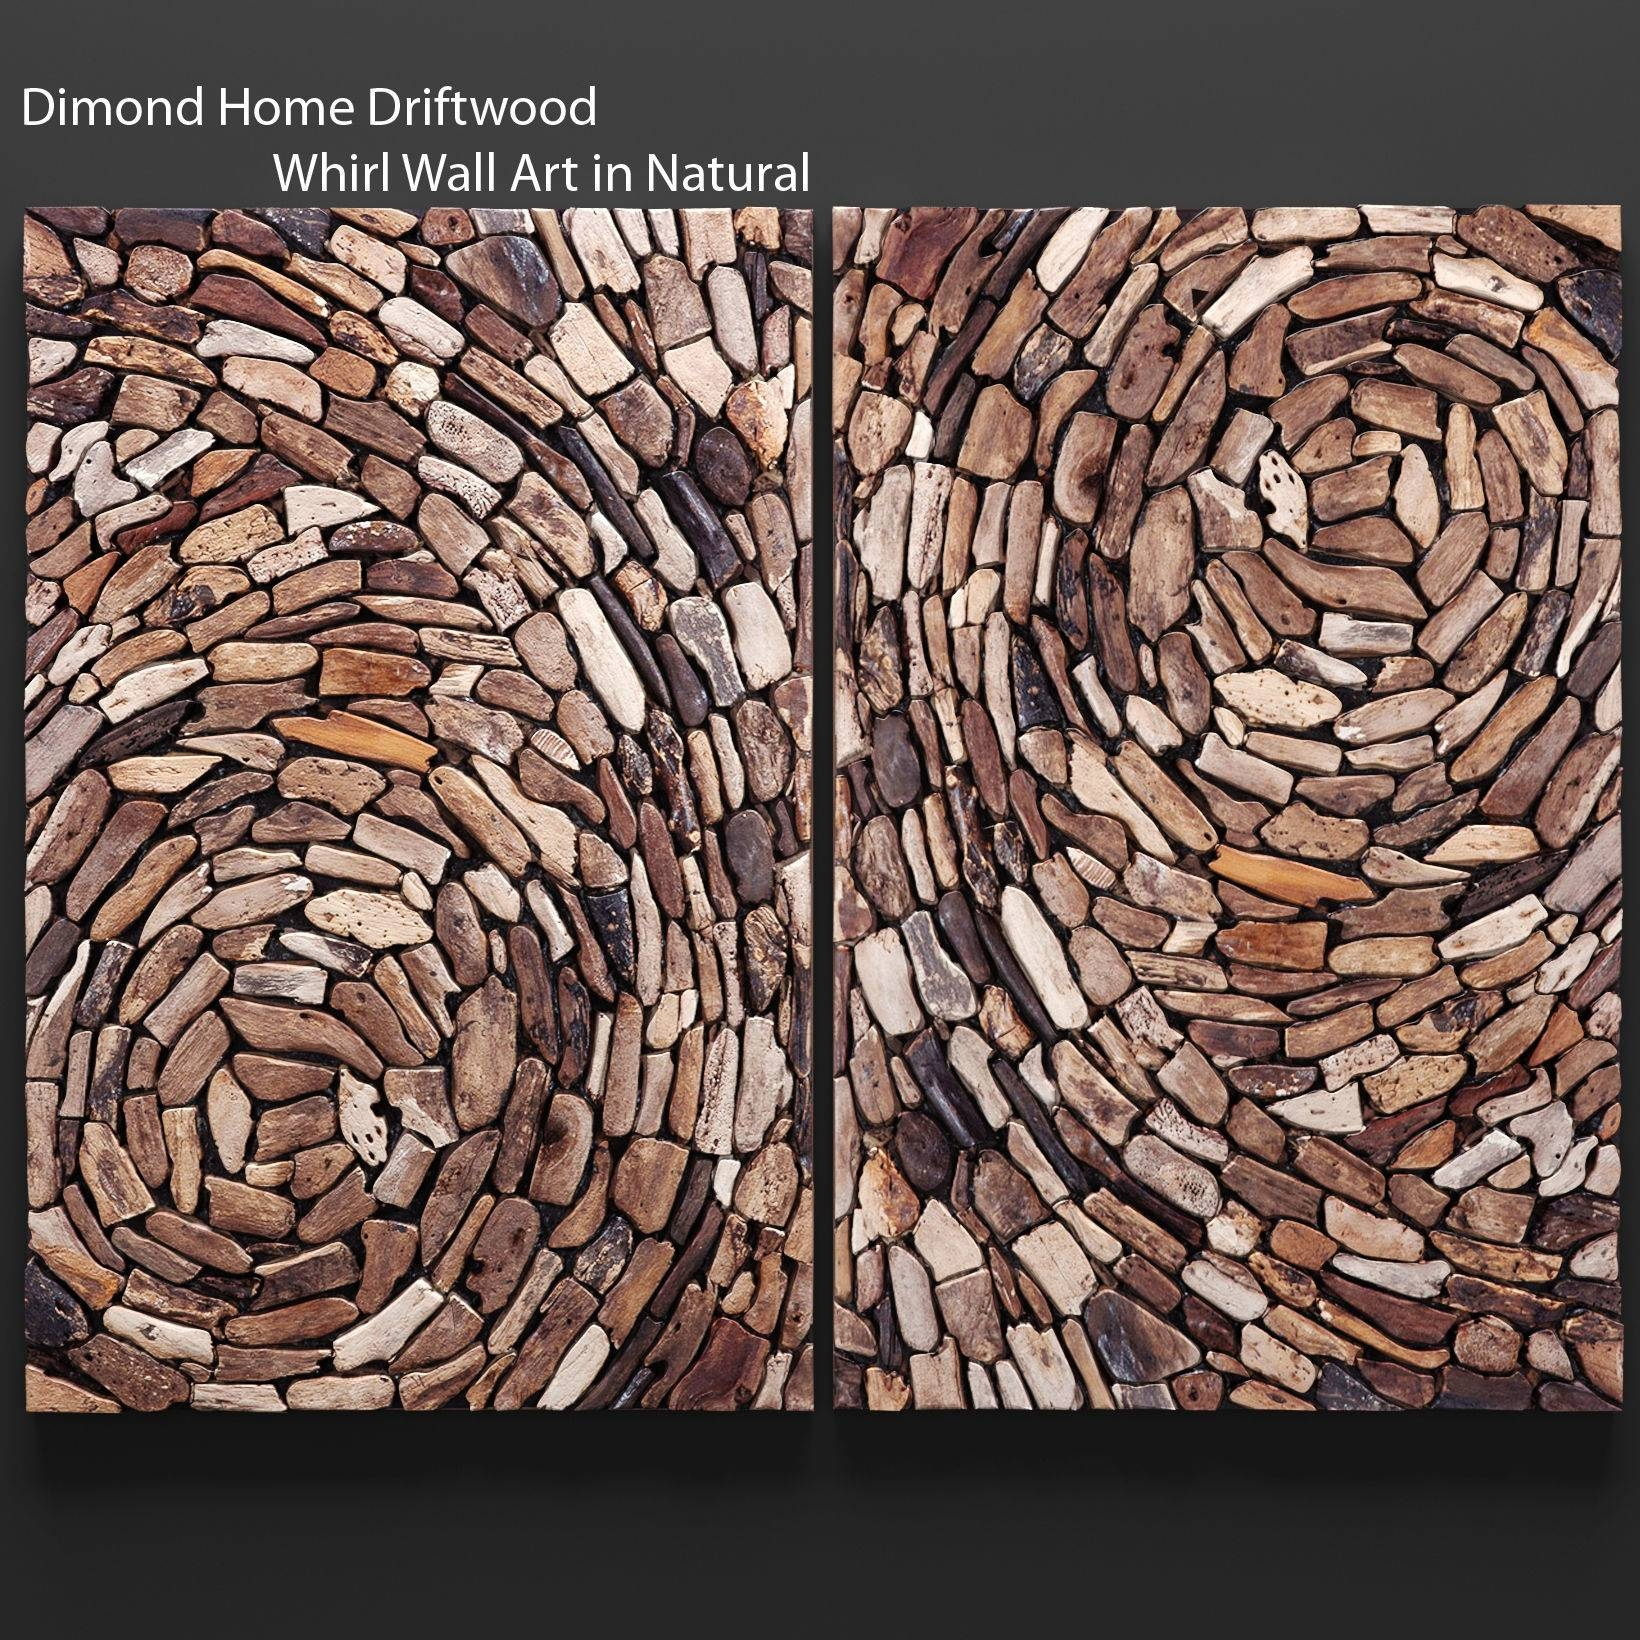 Dimond Home Driftwood Whirl Wall Art In Natural 3D Model Max Obj Inside Most Recent Driftwood Wall Art (View 9 of 30)